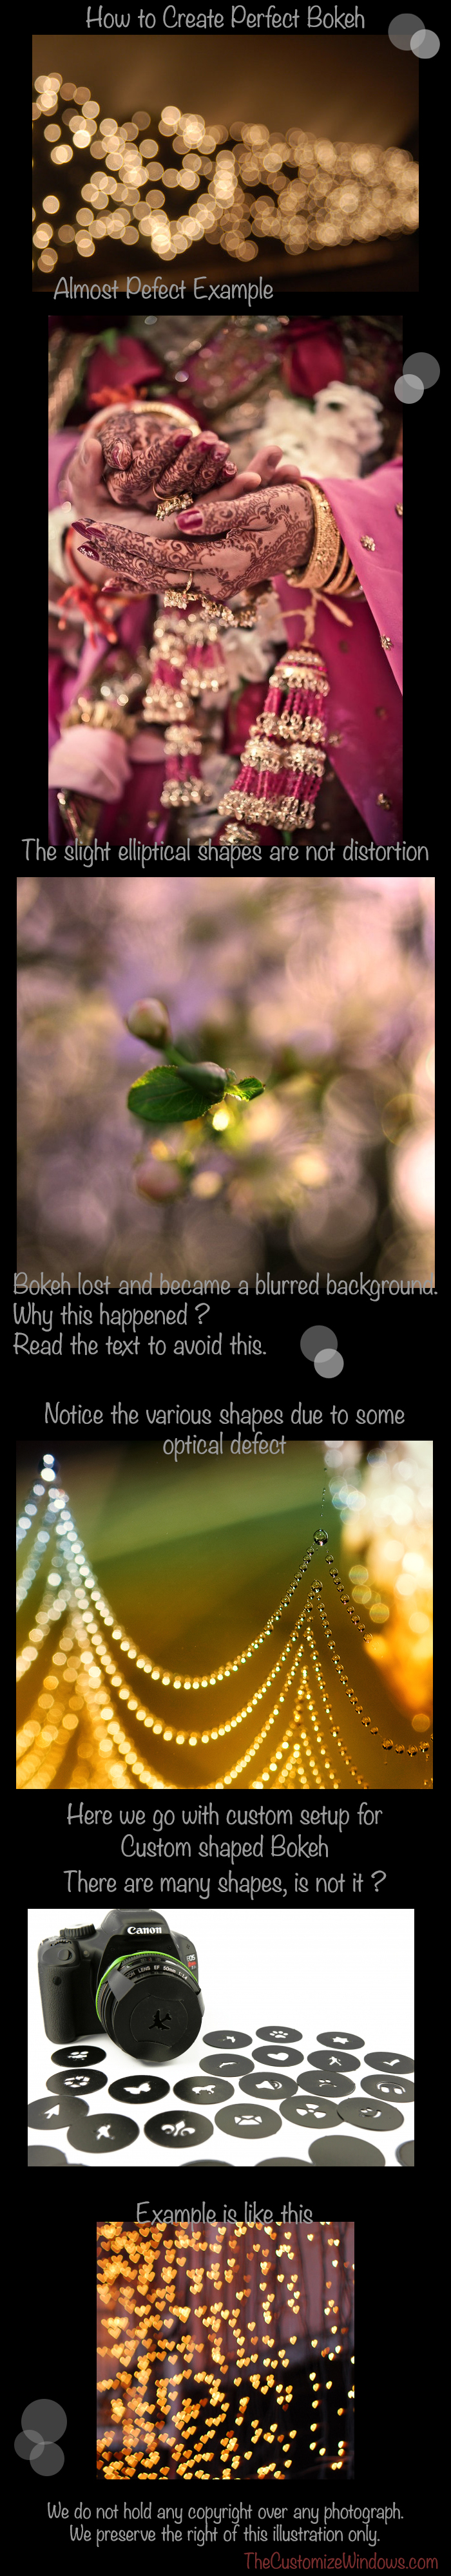 How-to-Create-Perfect-Bokeh-With-Your-DSLR-and-Prime-Lens